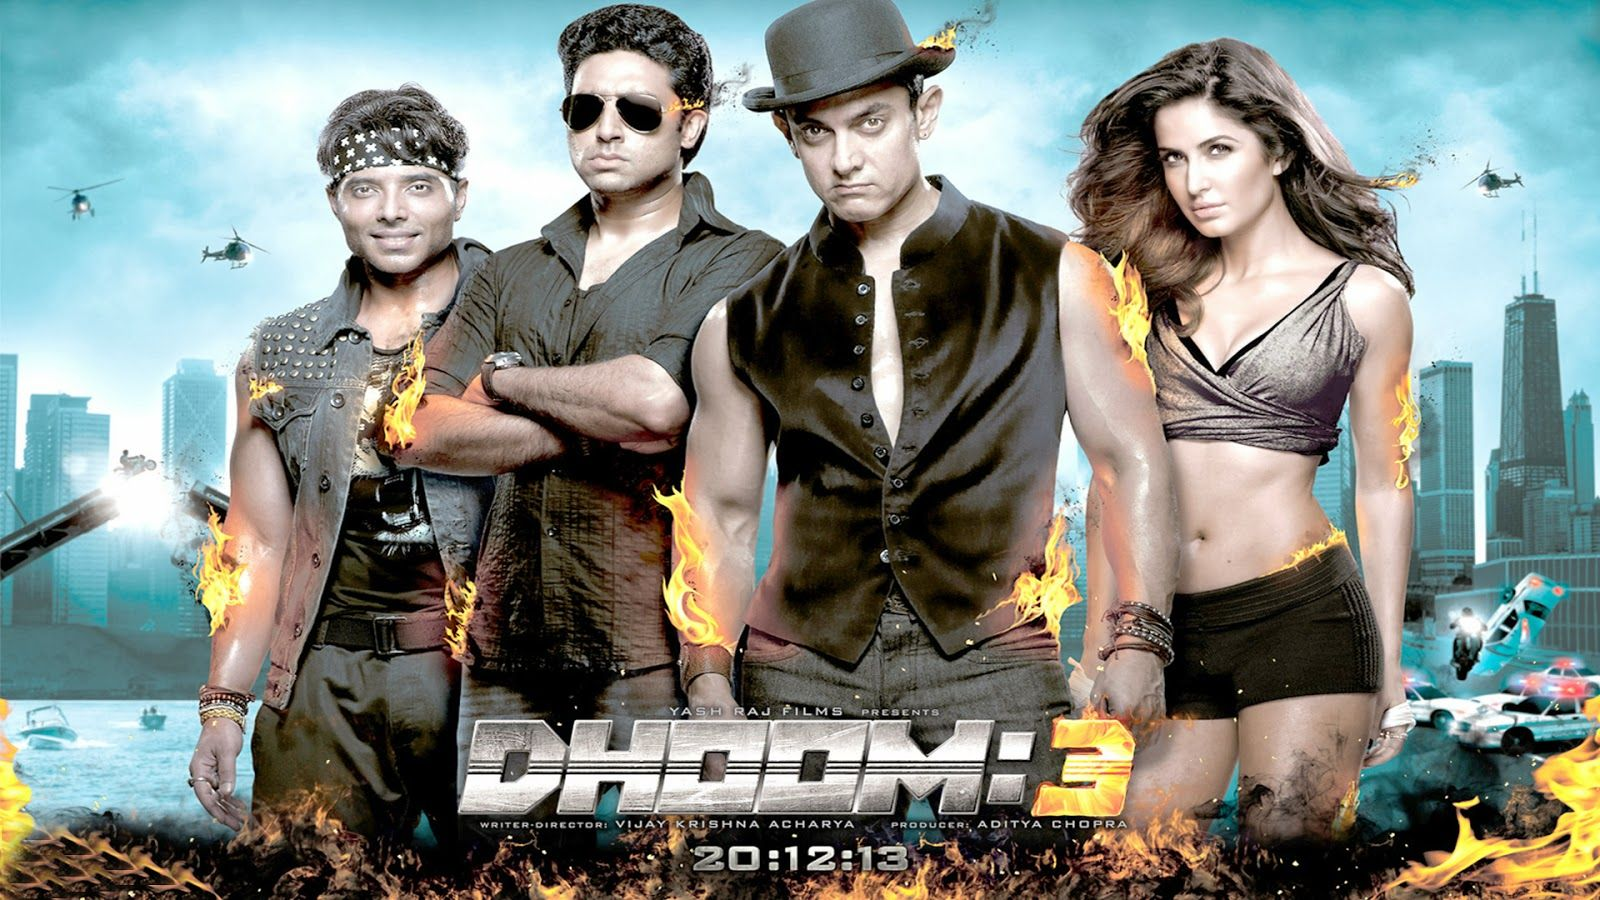 Download Latest Image Gallery Of Dhoom 3 Wallpapers From Hd Wallpapers Blog Our High Quality Wallpapers Is Best Co Bollywood Movie Dhoom 3 Bollywood Movies